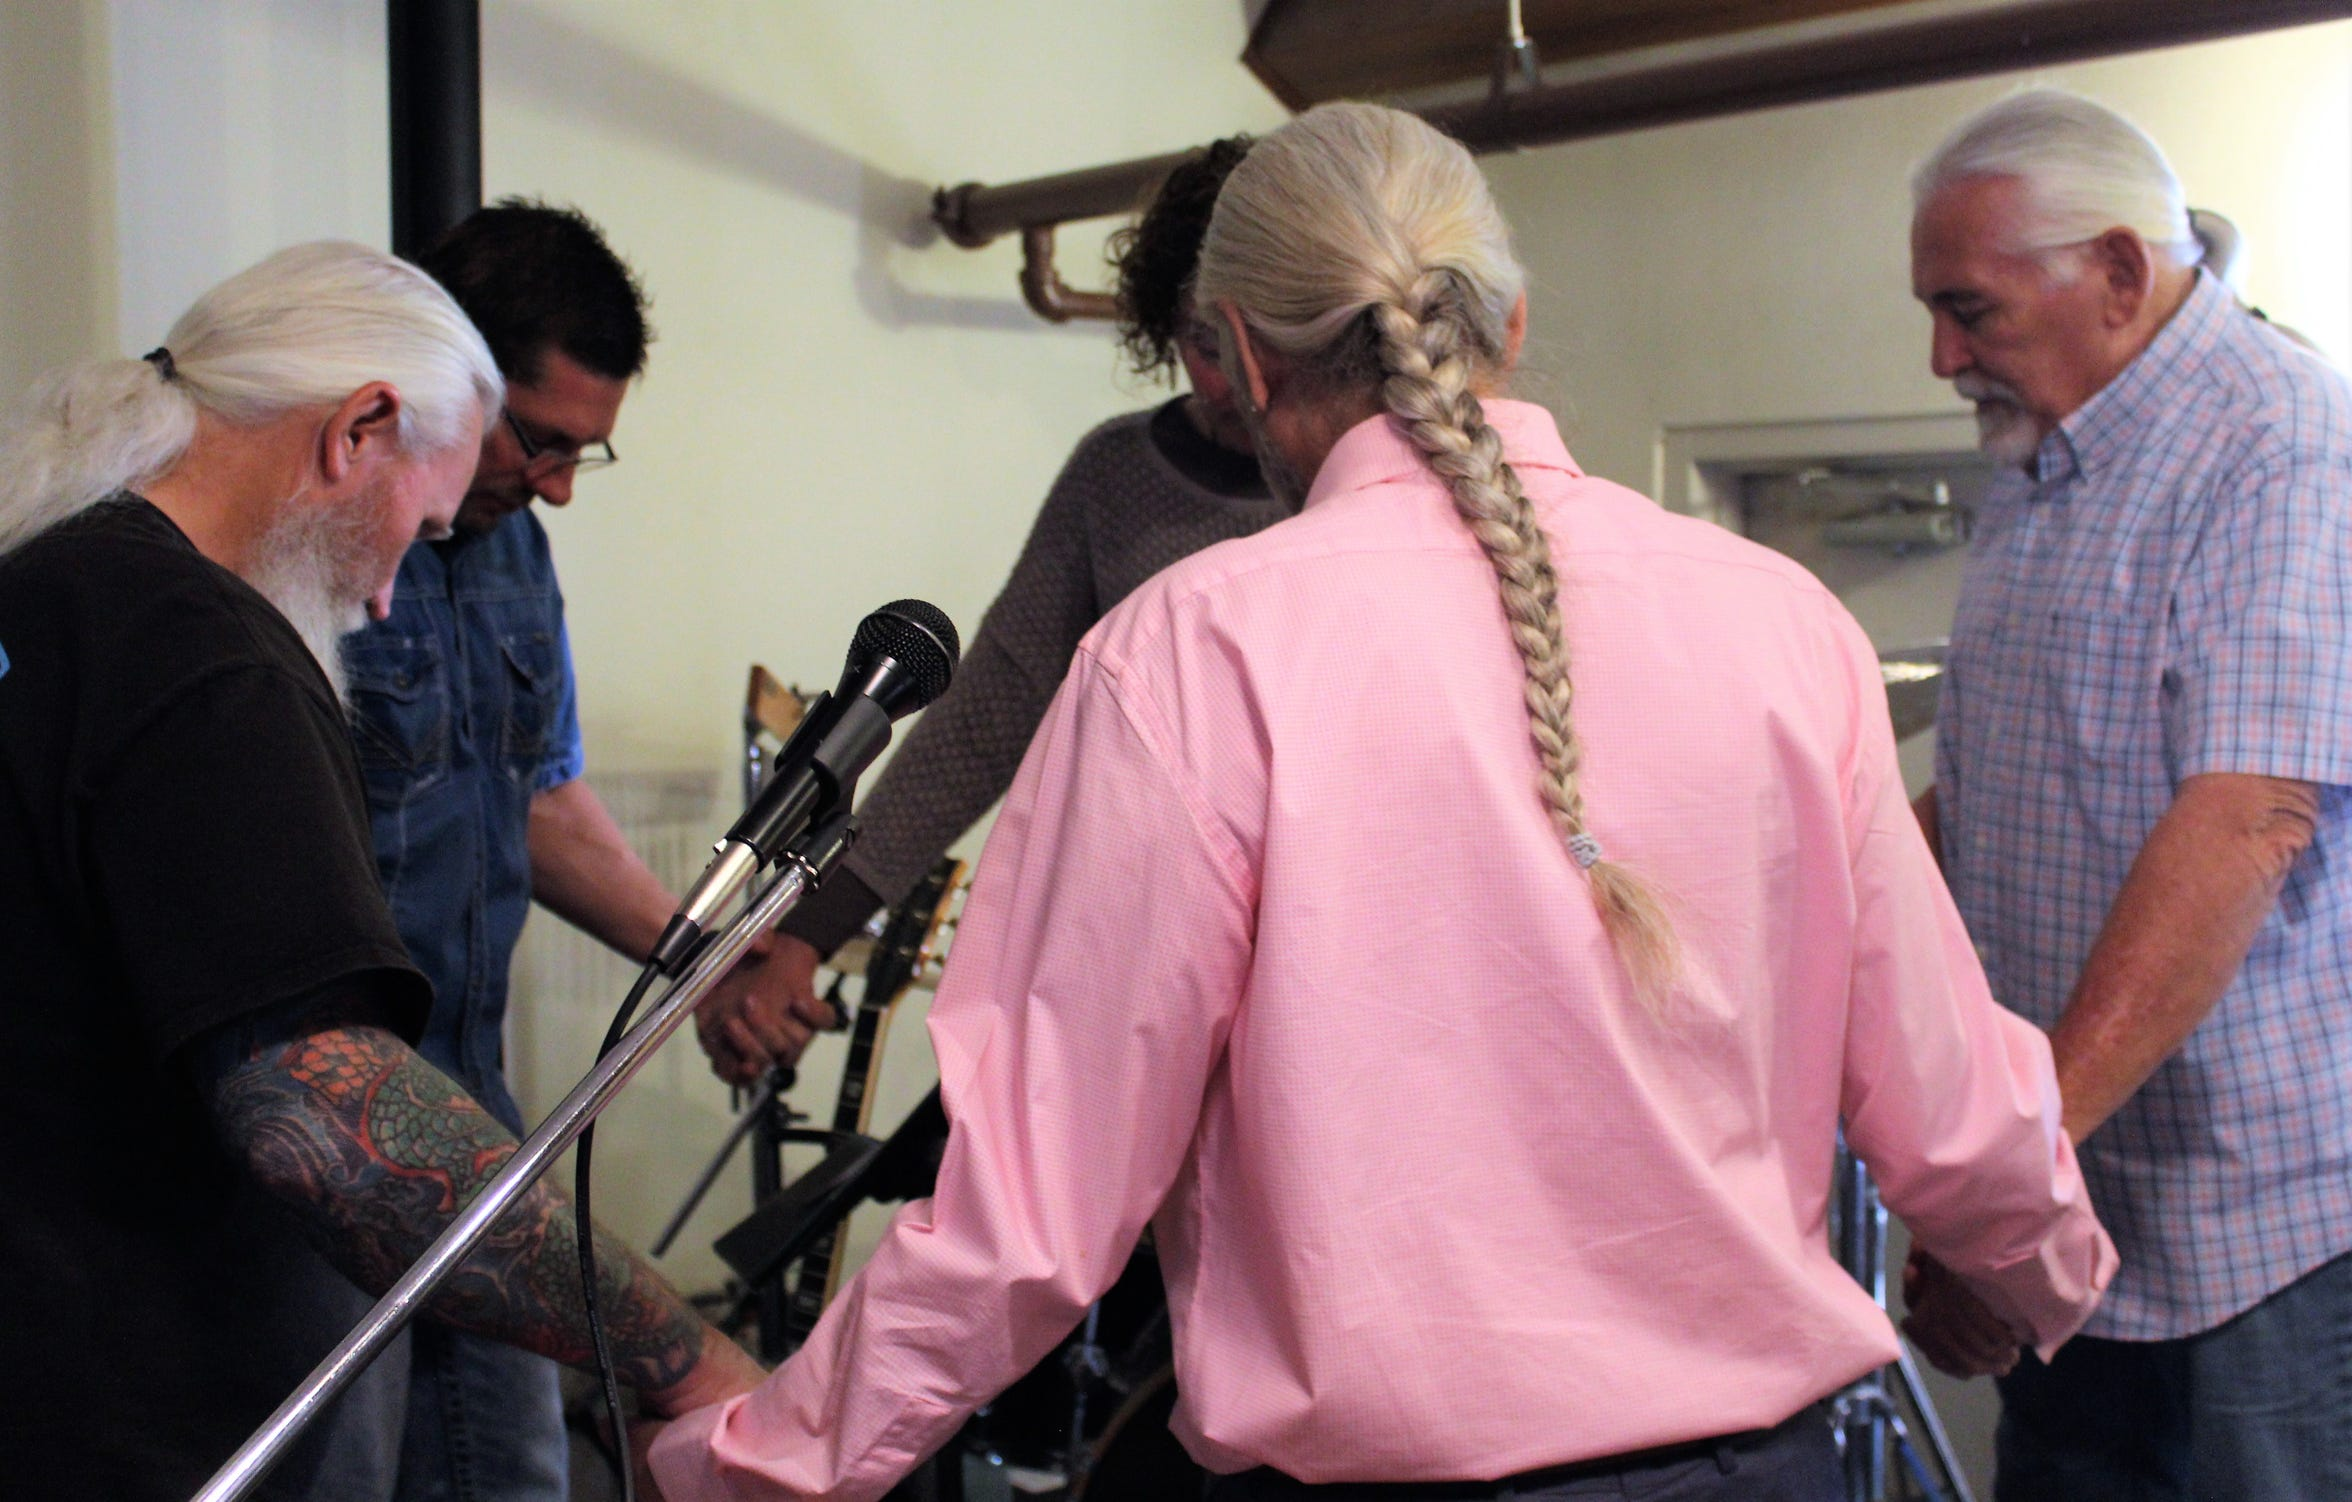 Doug Roysden, in pink shirt, prays with the other members of the Red Dirt Disciples before playing during a recent service at Wylie Christian Church.